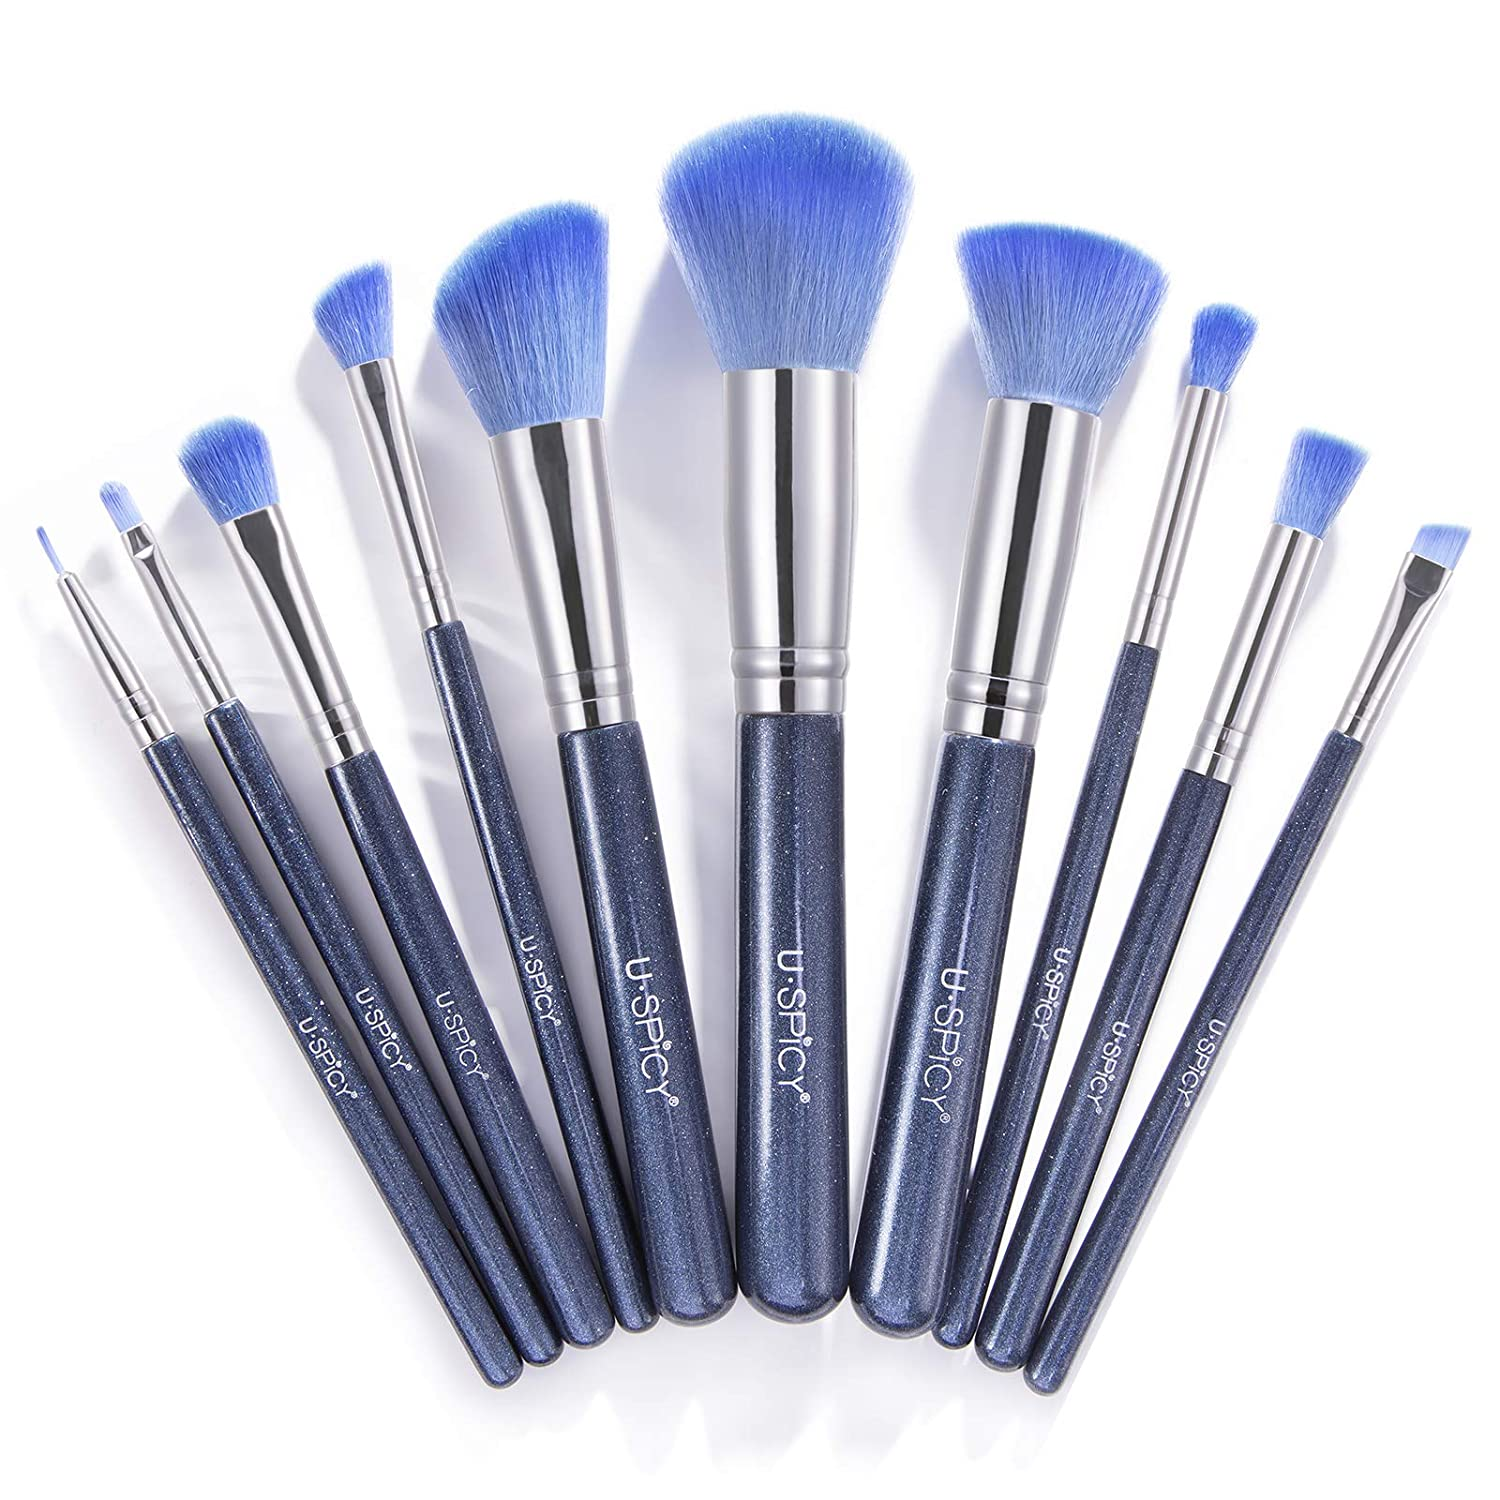 Makeup Brushes, USpicy Professional Makeup Brush Set 10 Pieces (Soft Synthetic Fiber for Uniform Application of Blush, Creams, Liquids, Contouring & Powders)-Blue